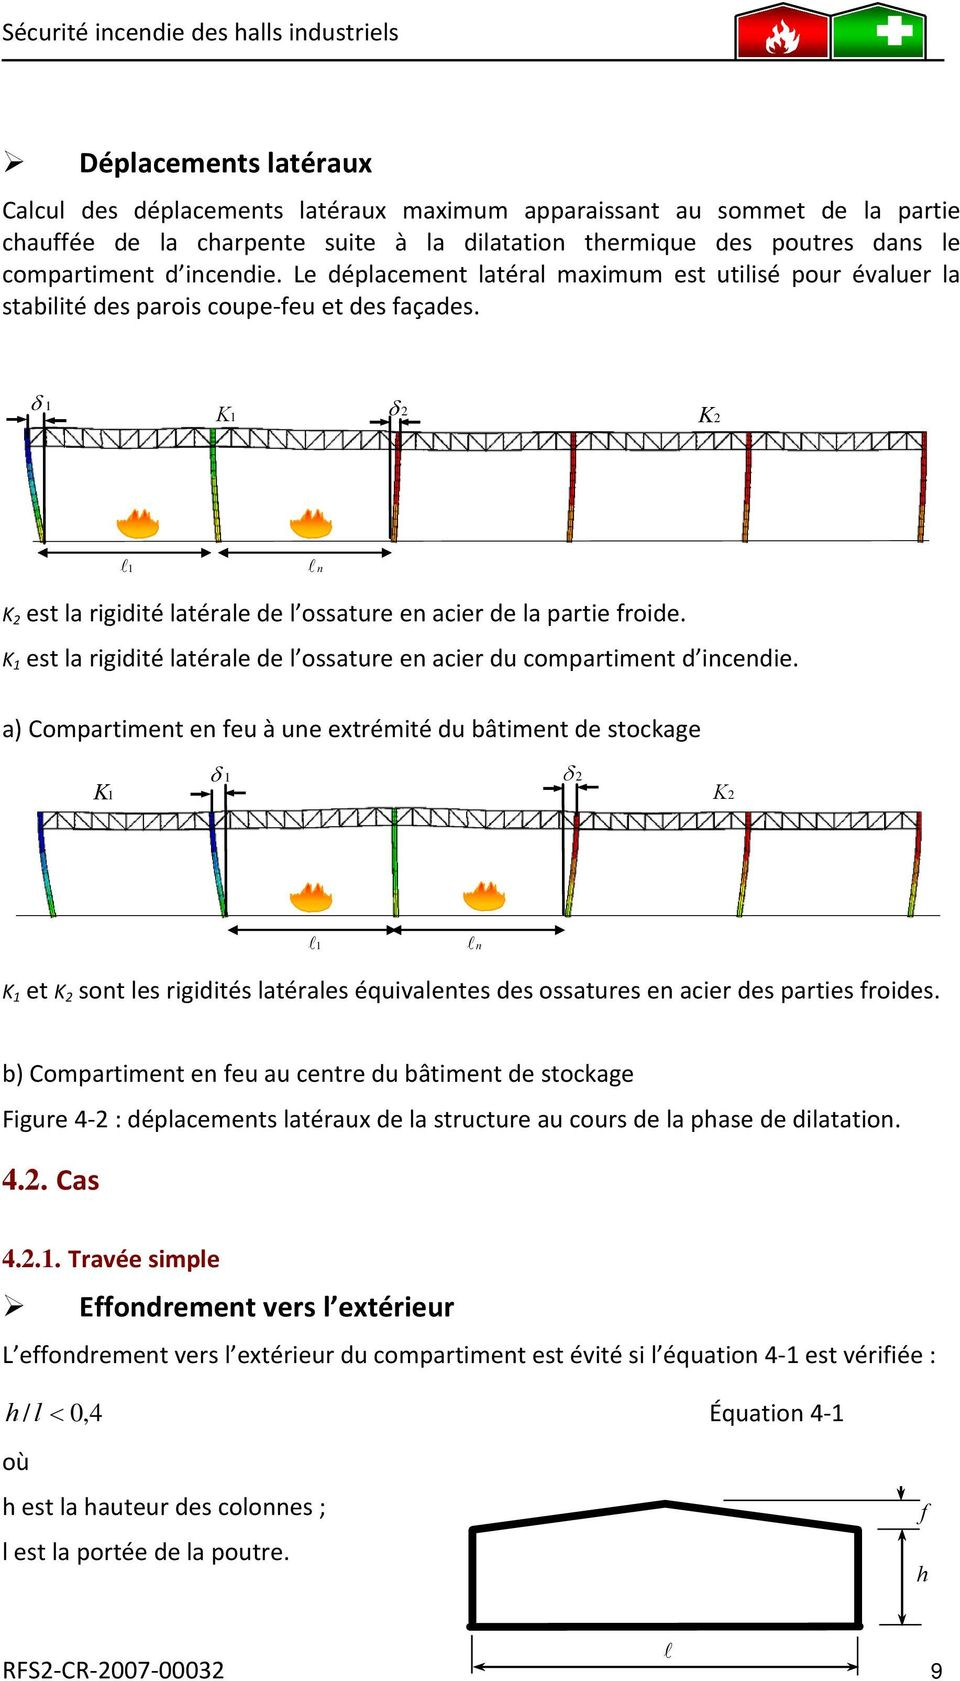 Guide de conception s curit incendie des halls for Portique traction exterieur